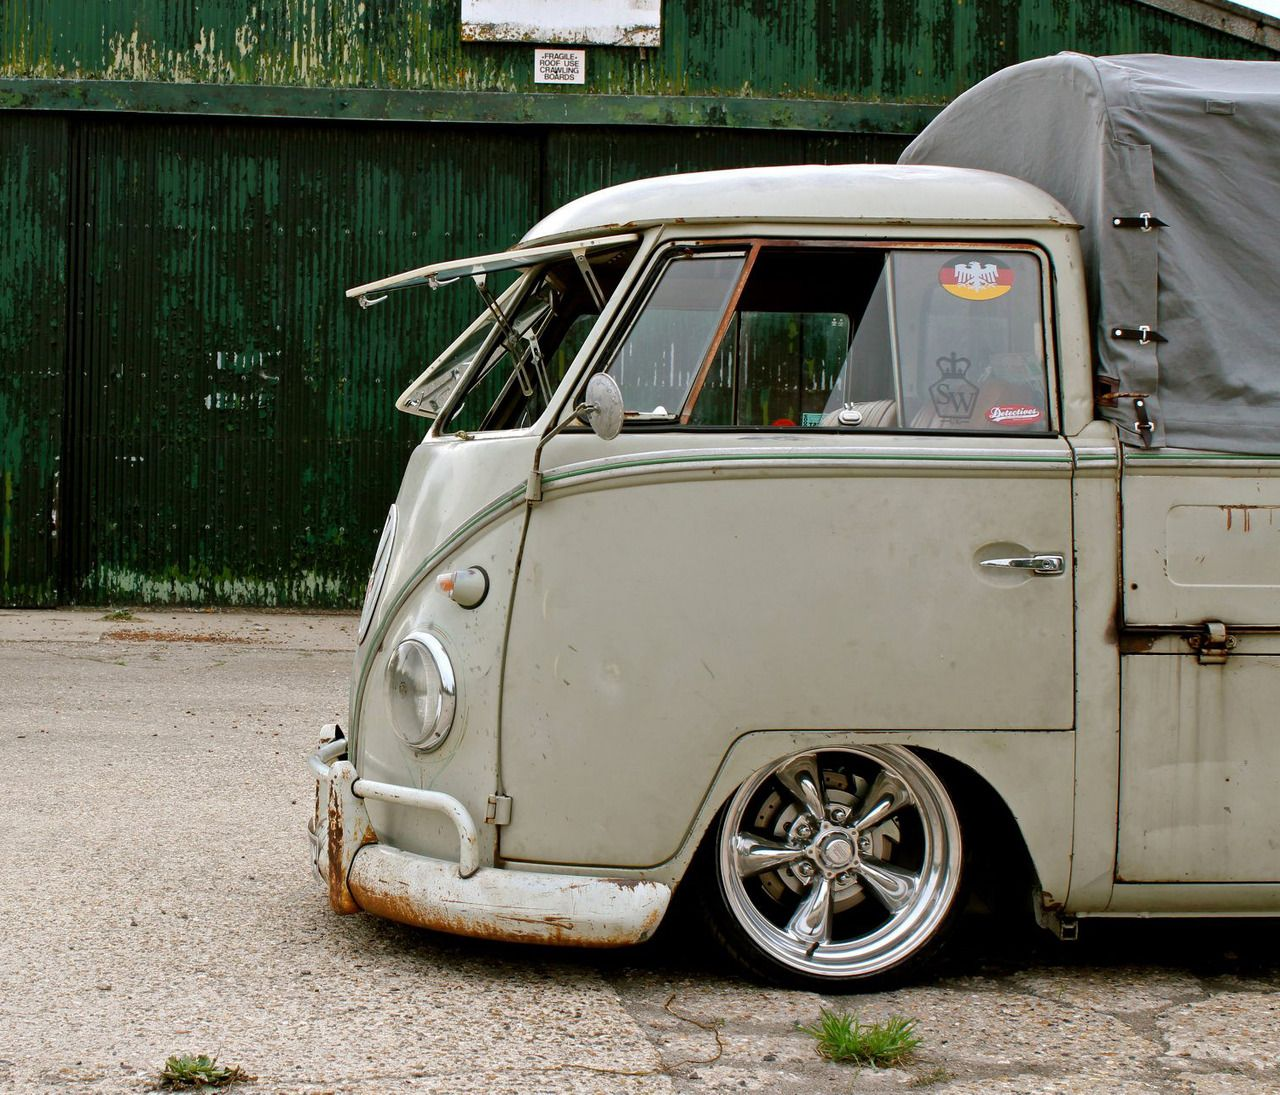 Slammed VW Bus single cab | Vehicles For The People - Type